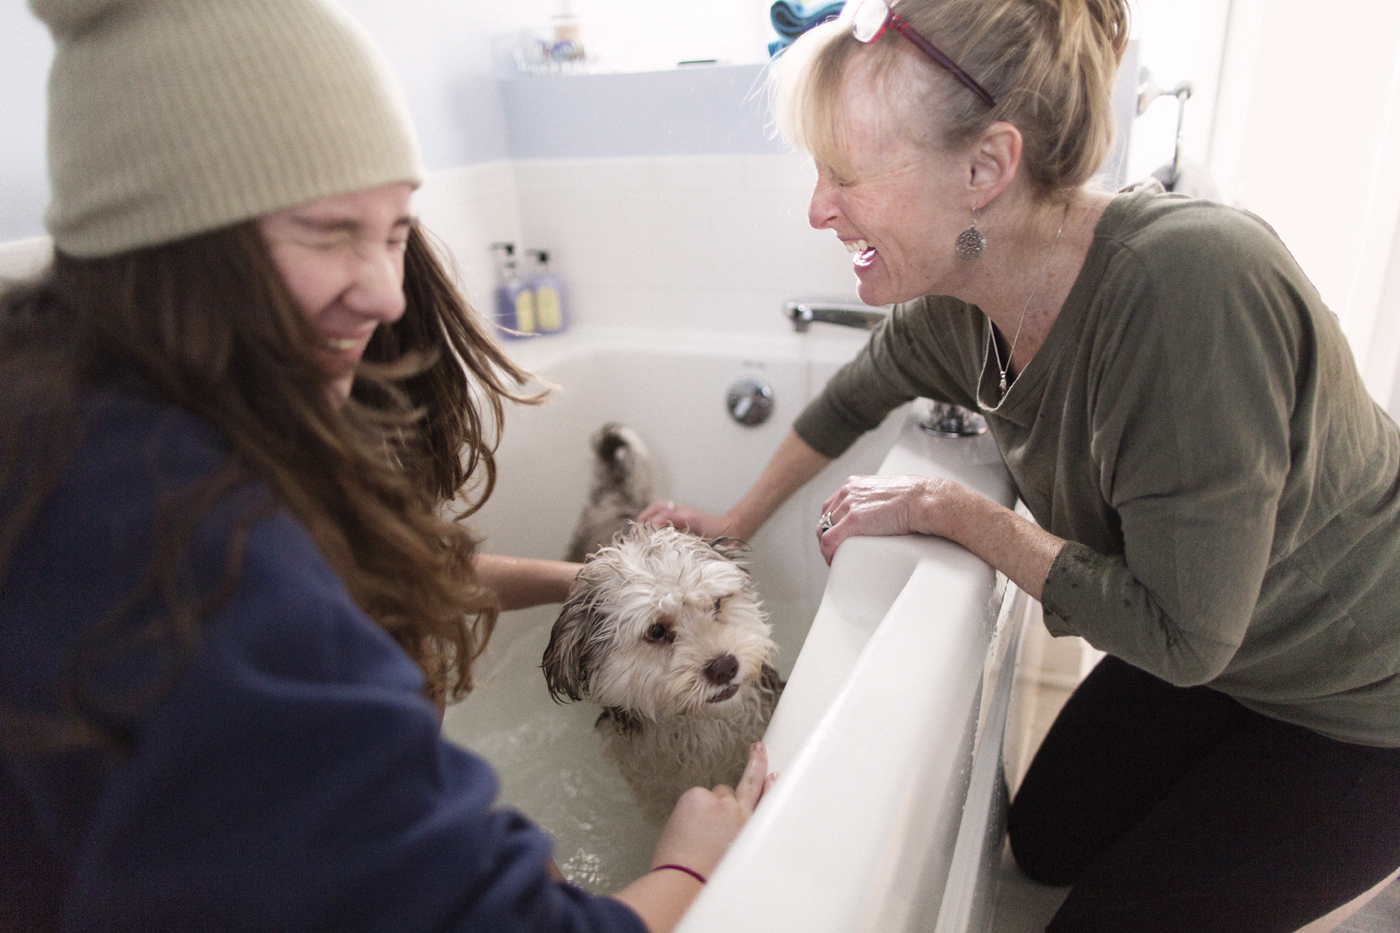 Faith and her daughter get sprayed as their dog shakes itself dry.